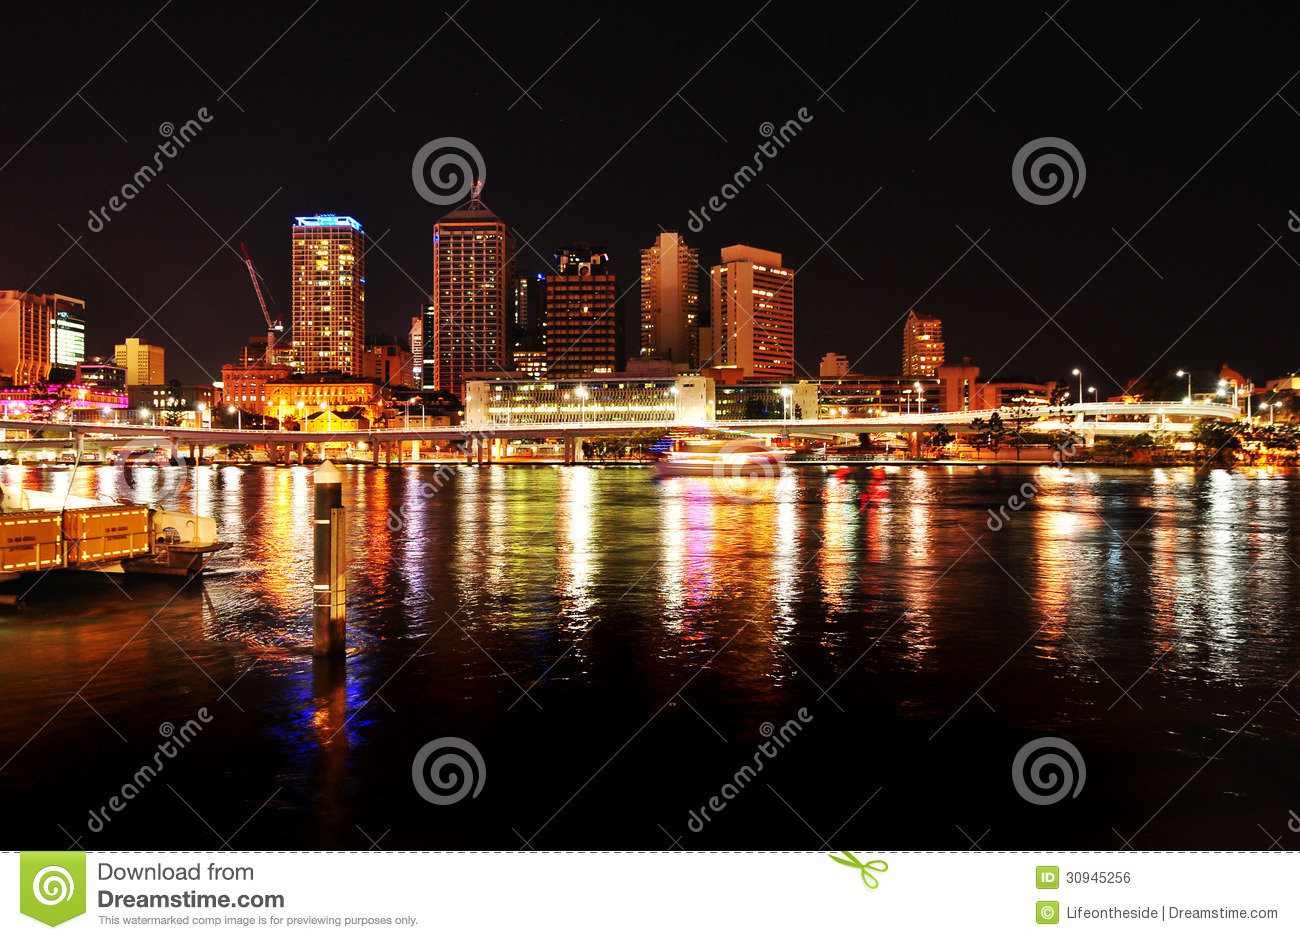 Brisbane City Night Lights River Reflection Australia Stock Photo.